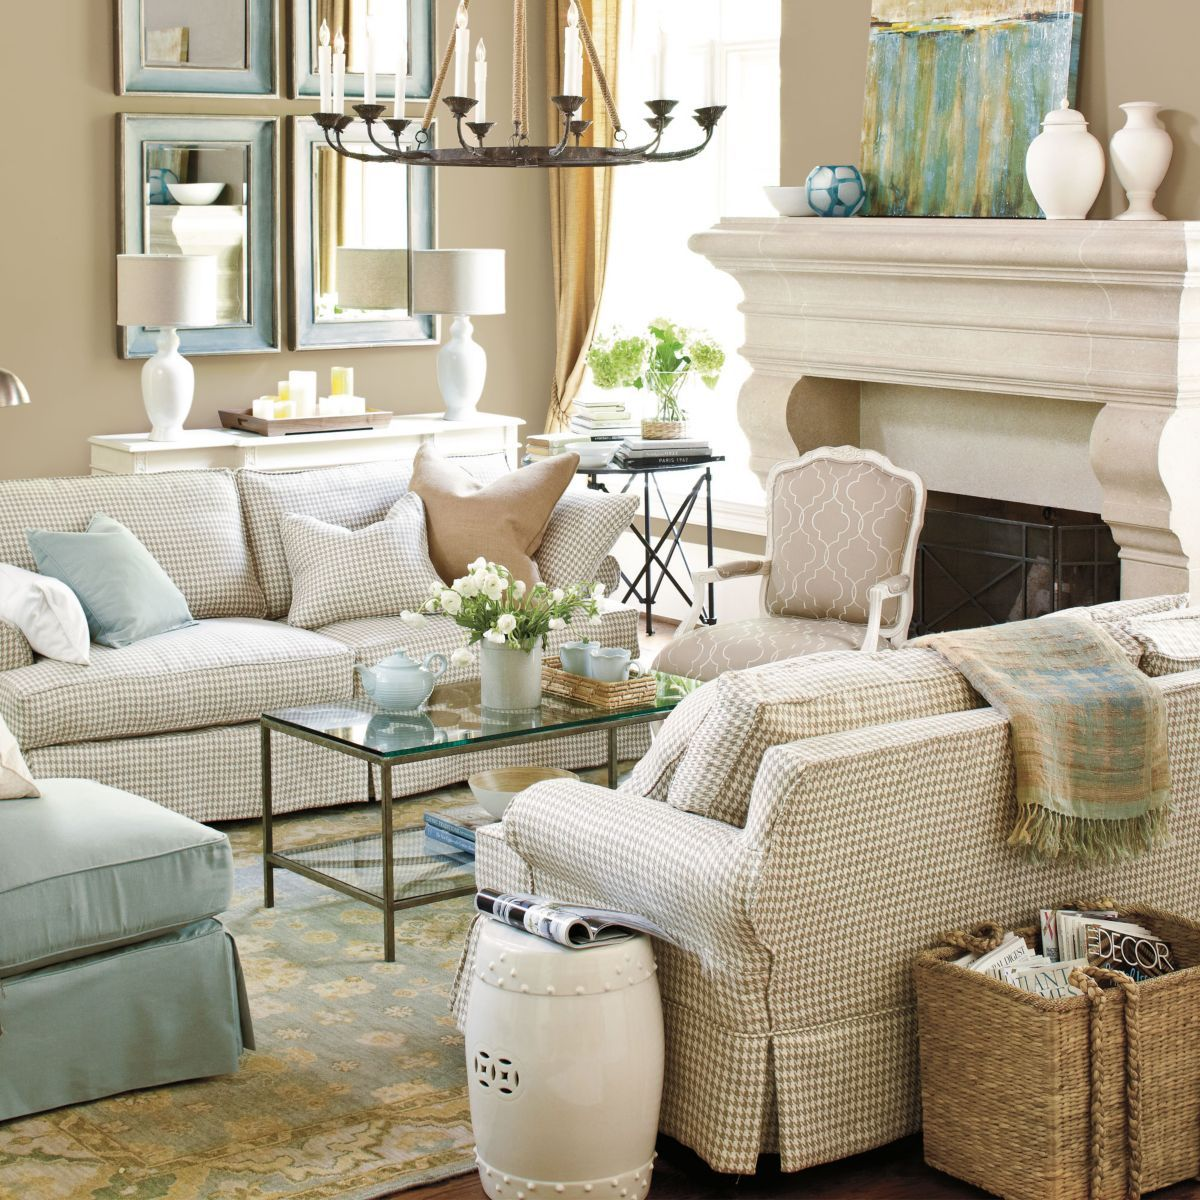 Plaid Furniture Country Living Room: Take The Plaid Couches Out, Replace With Same Neutral